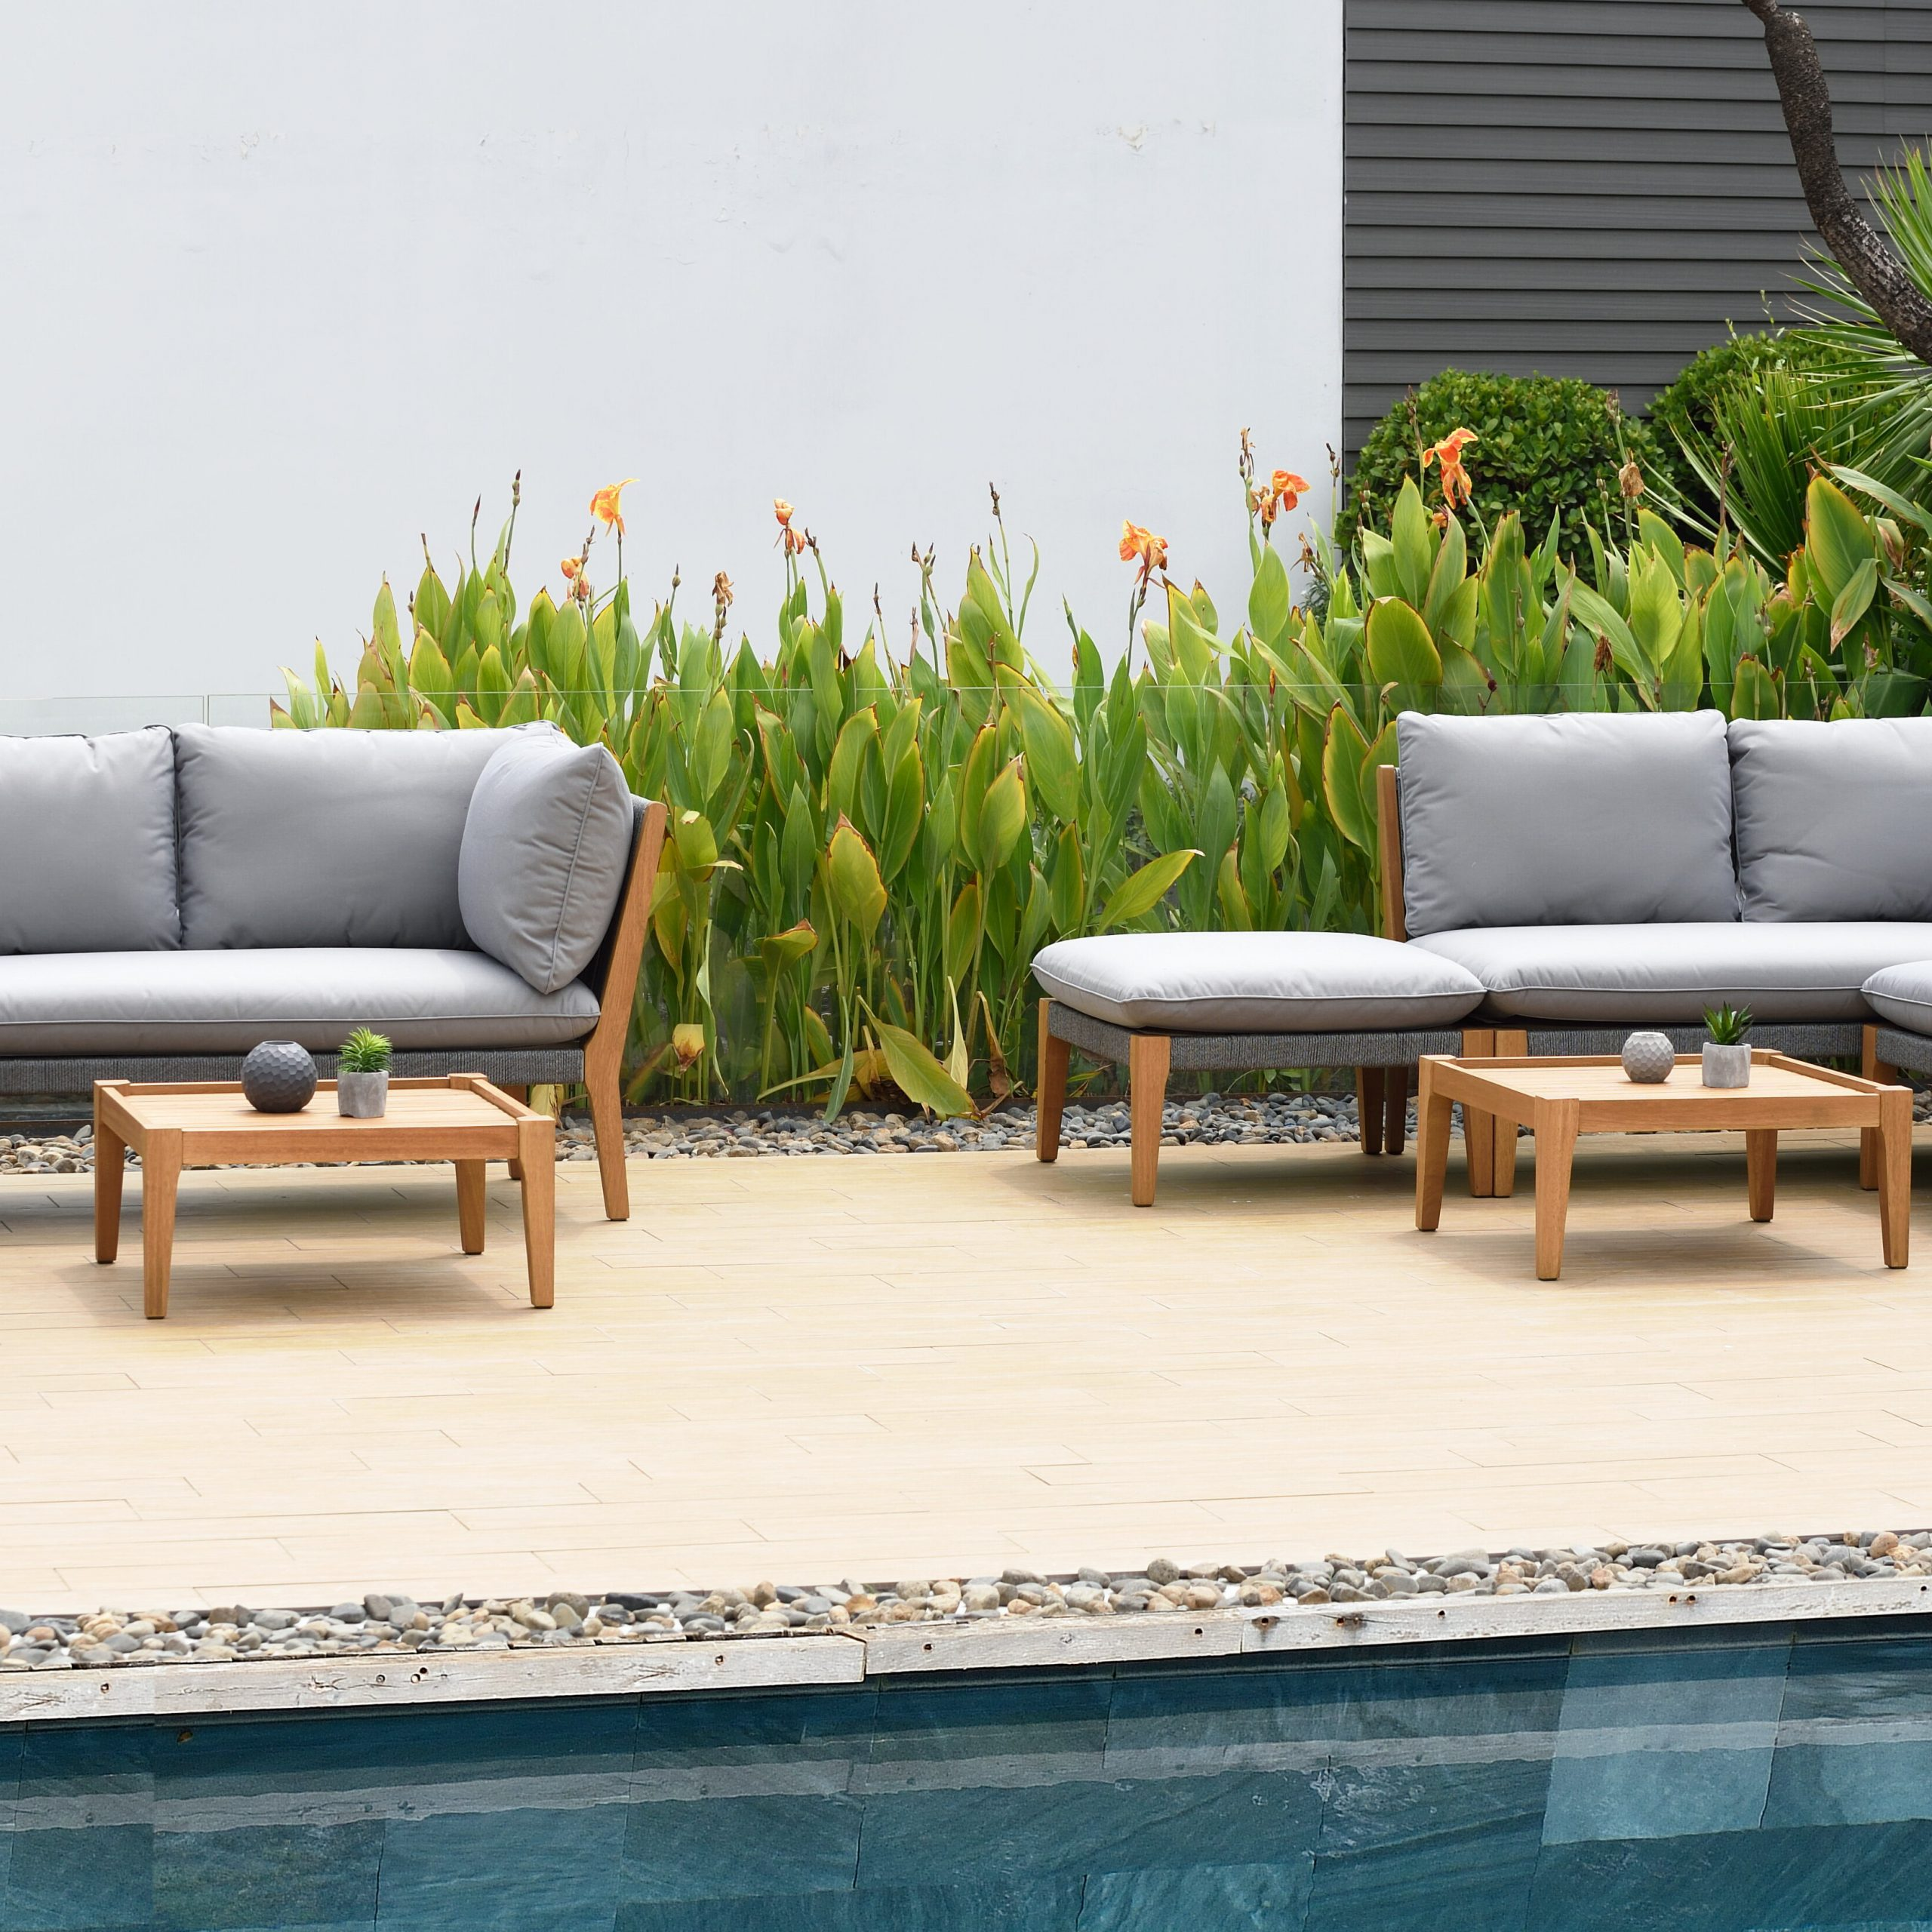 Famous Olinda 3 Piece Sectionals Seating Group With Cushions Inside Olinda 8 Piece Teak Sectional Seating Group With Cushions (View 2 of 25)